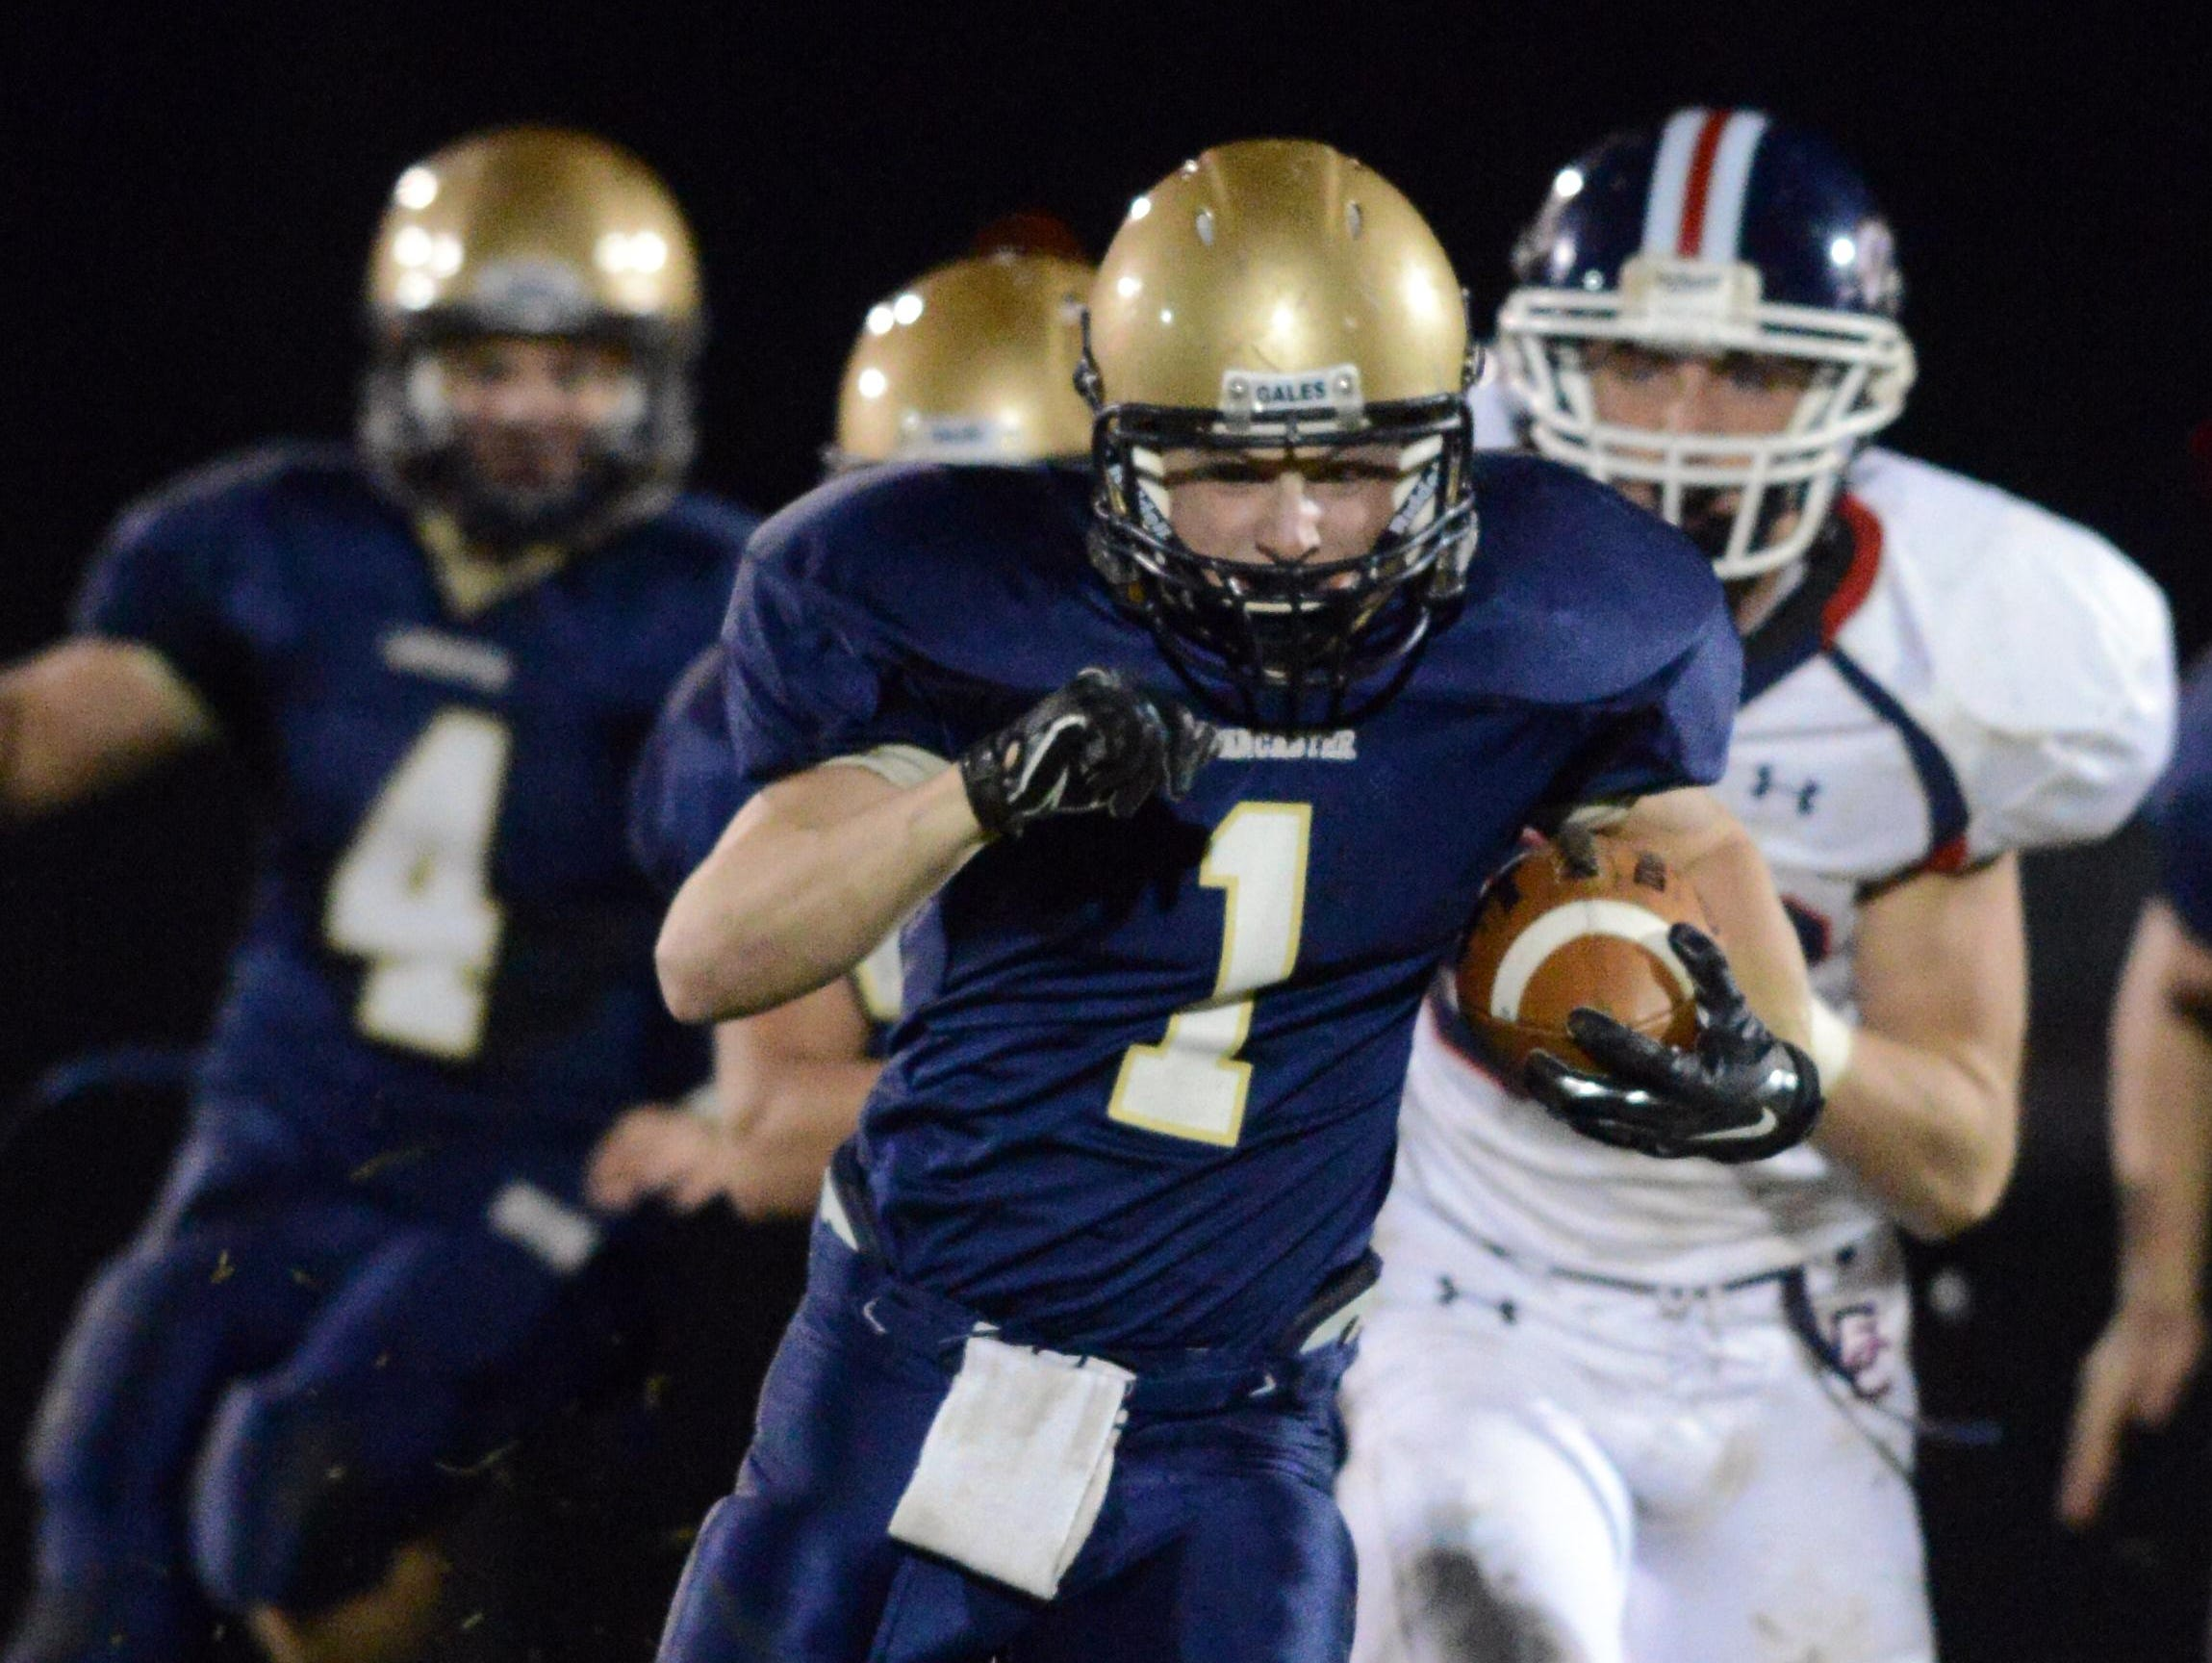 Lancaster's Noah Dryden runs the ball during the Golden Gales' 21-14 win in 2014 over Grove City.